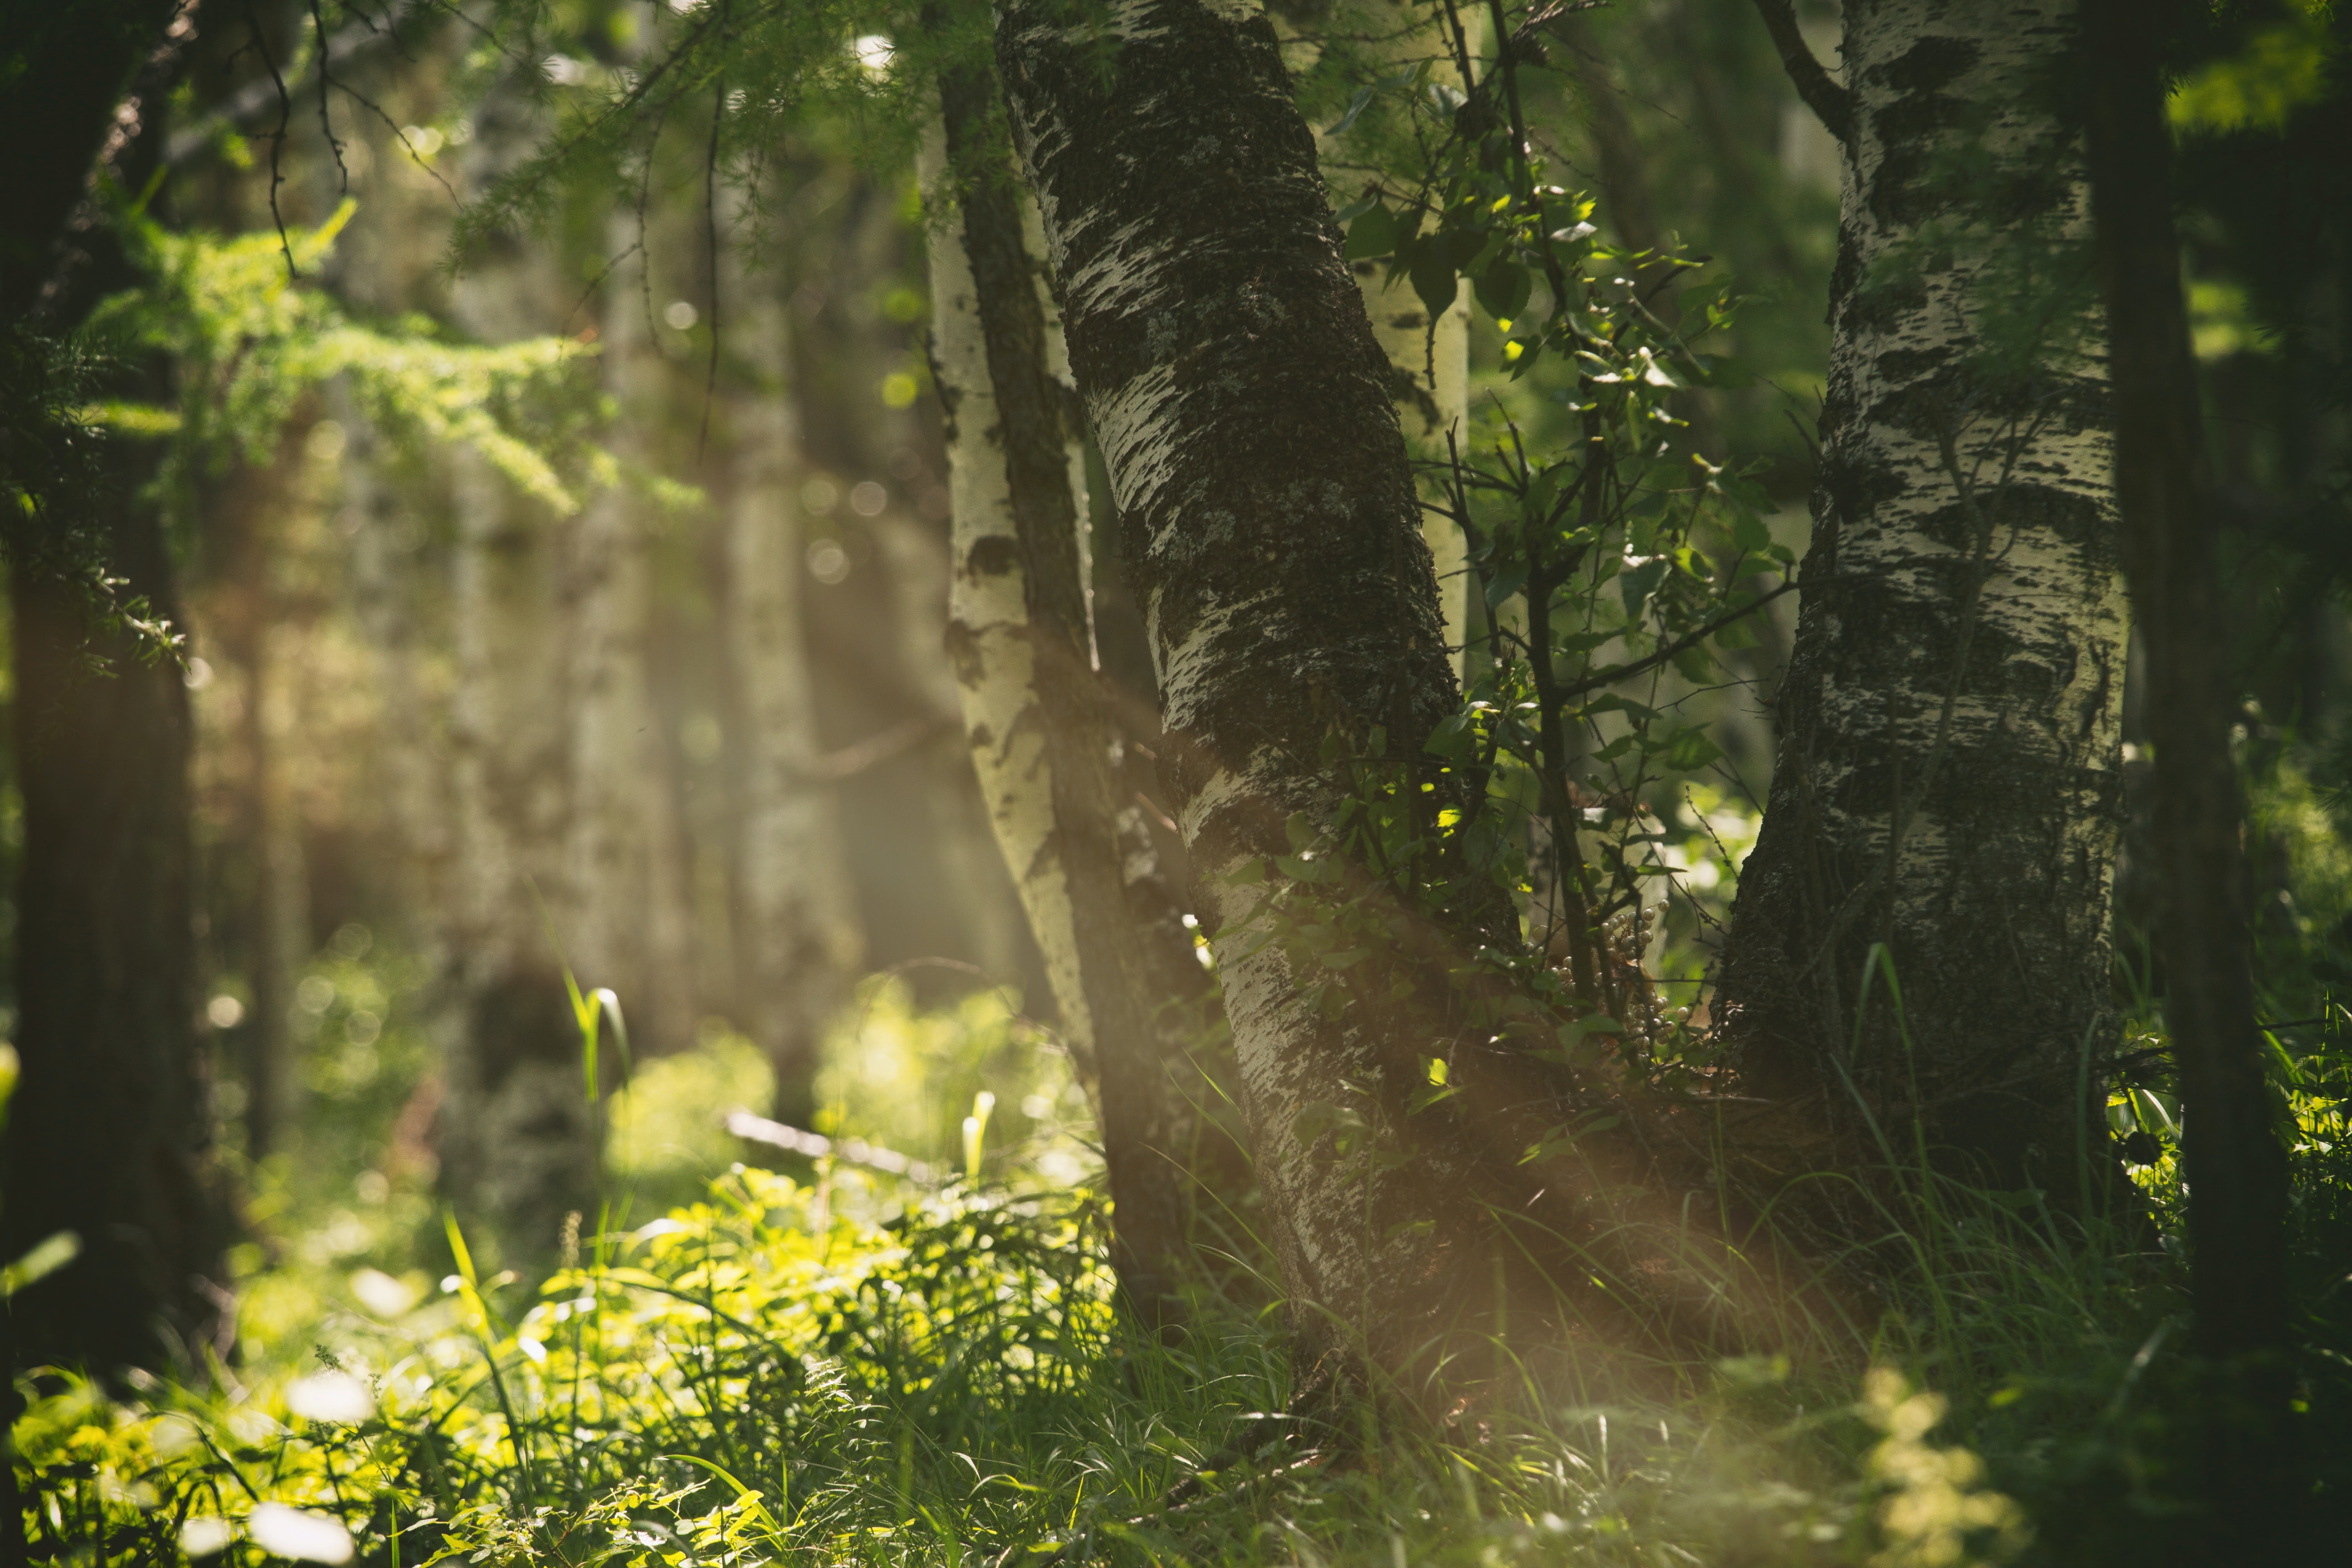 sun rays passing through forest tree